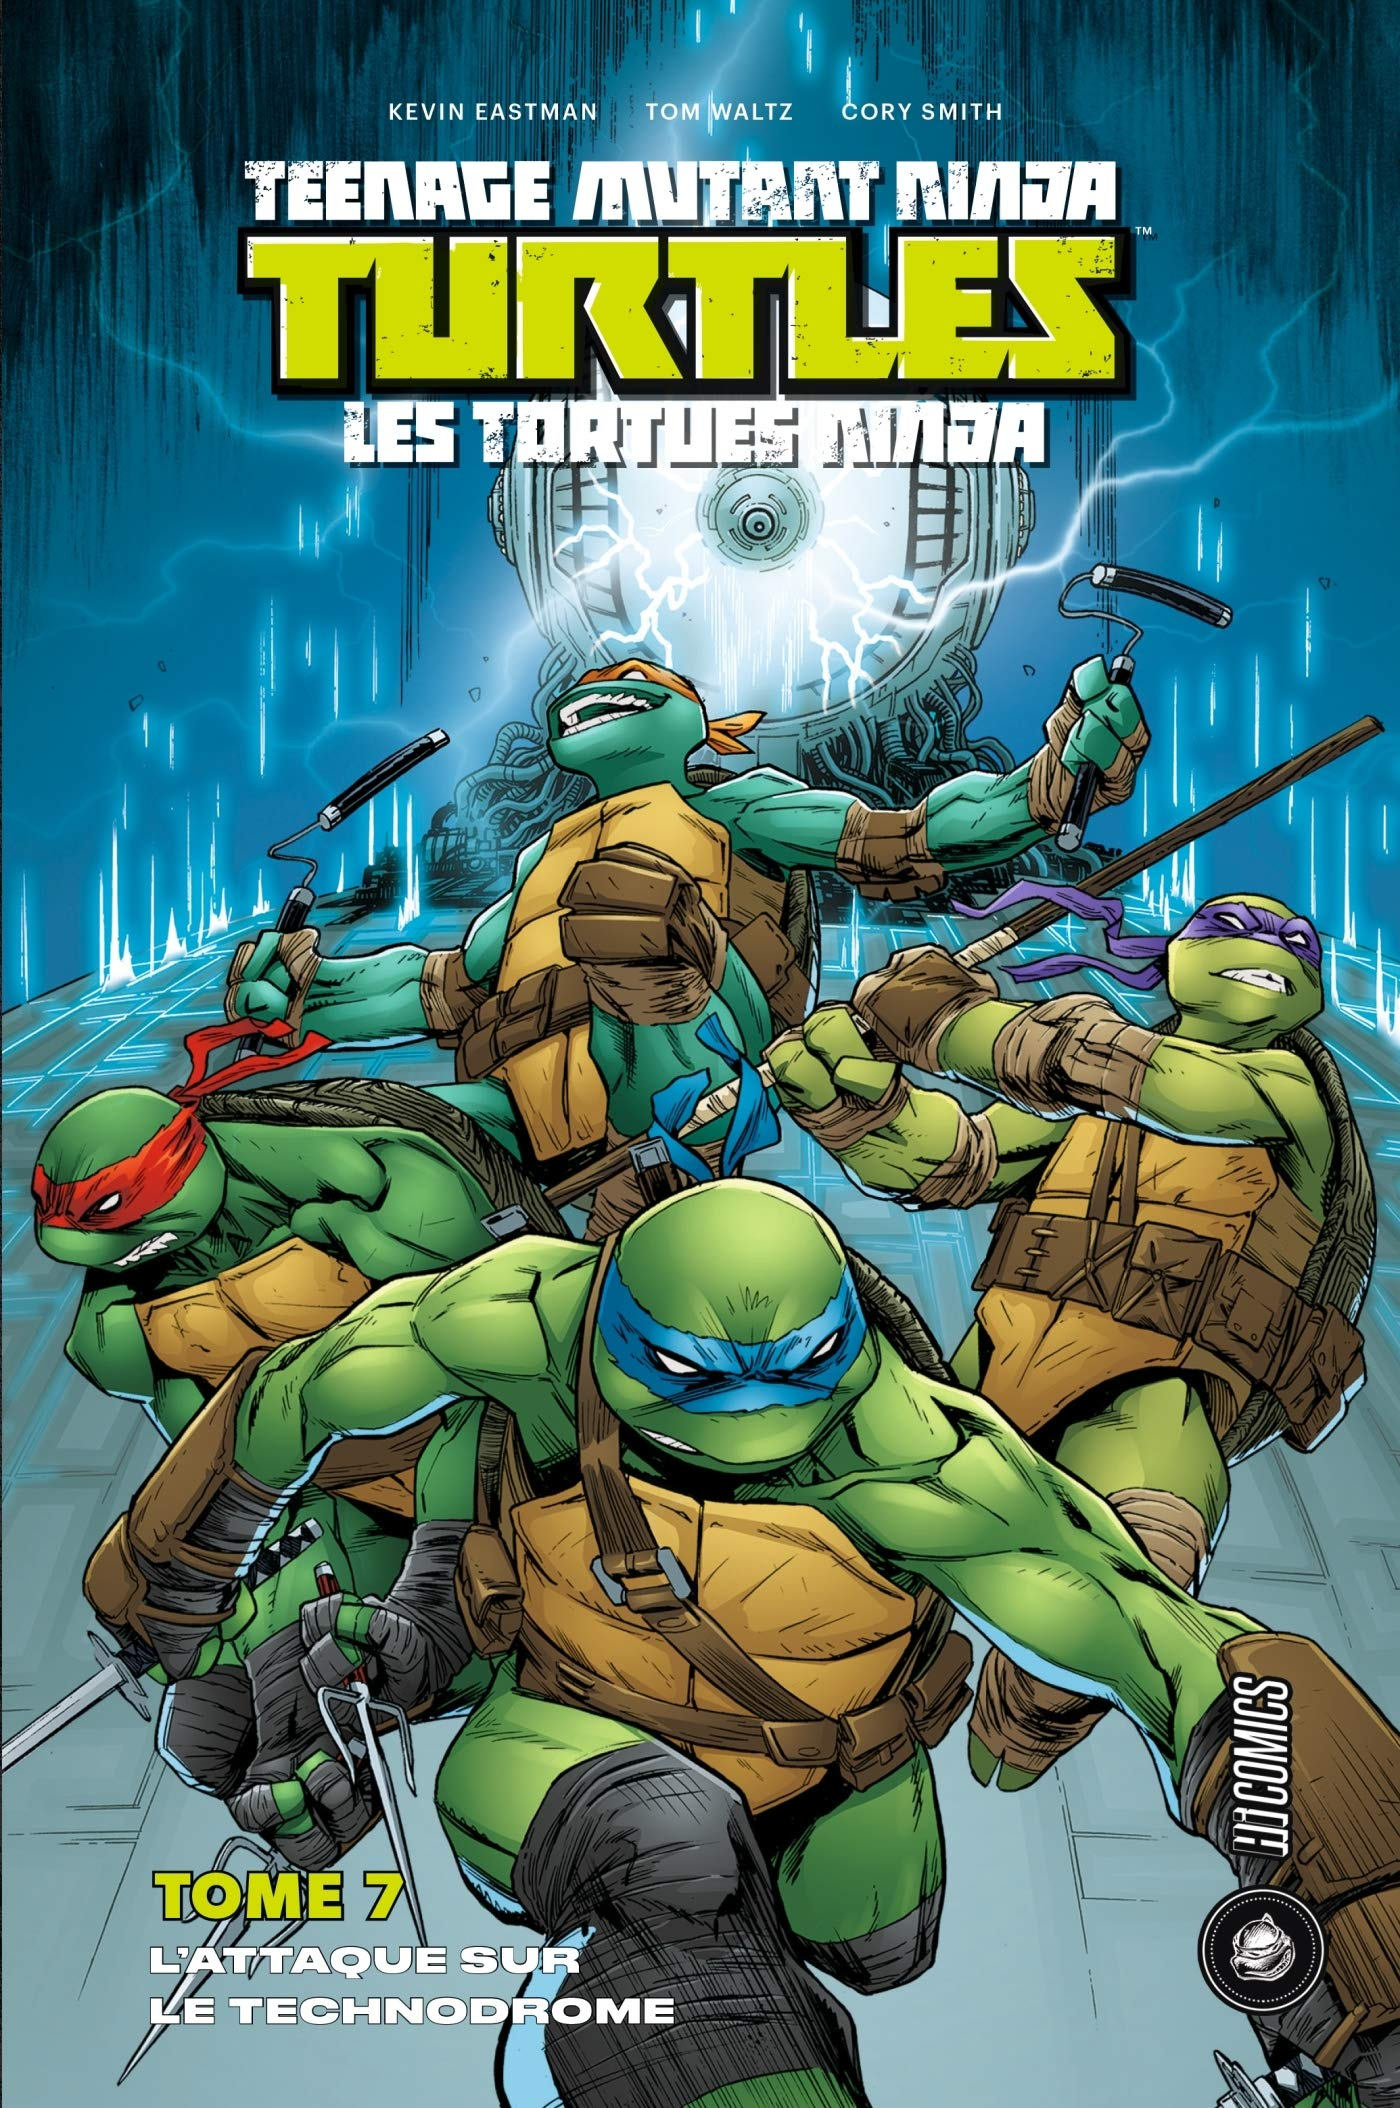 Les Tortues Ninja, Tome 7 : Lattaque sur le technodrome ...